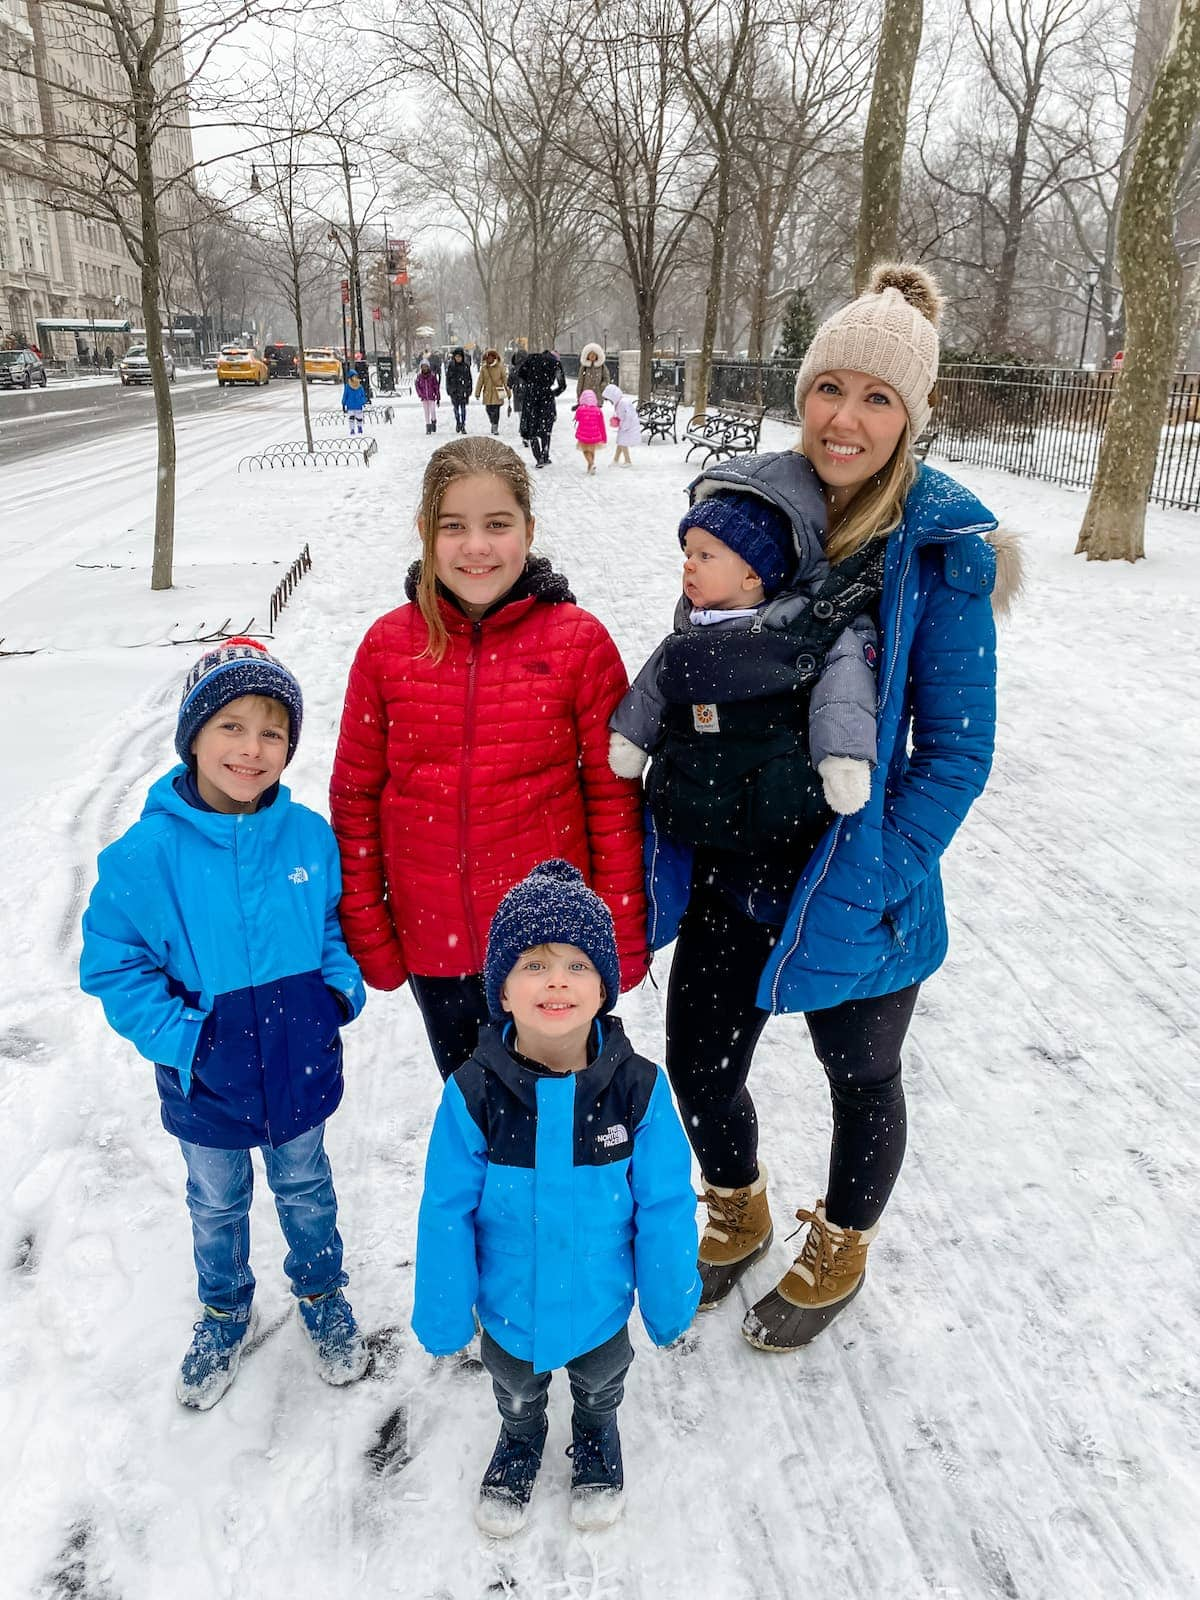 Lauren and the kids in the snow